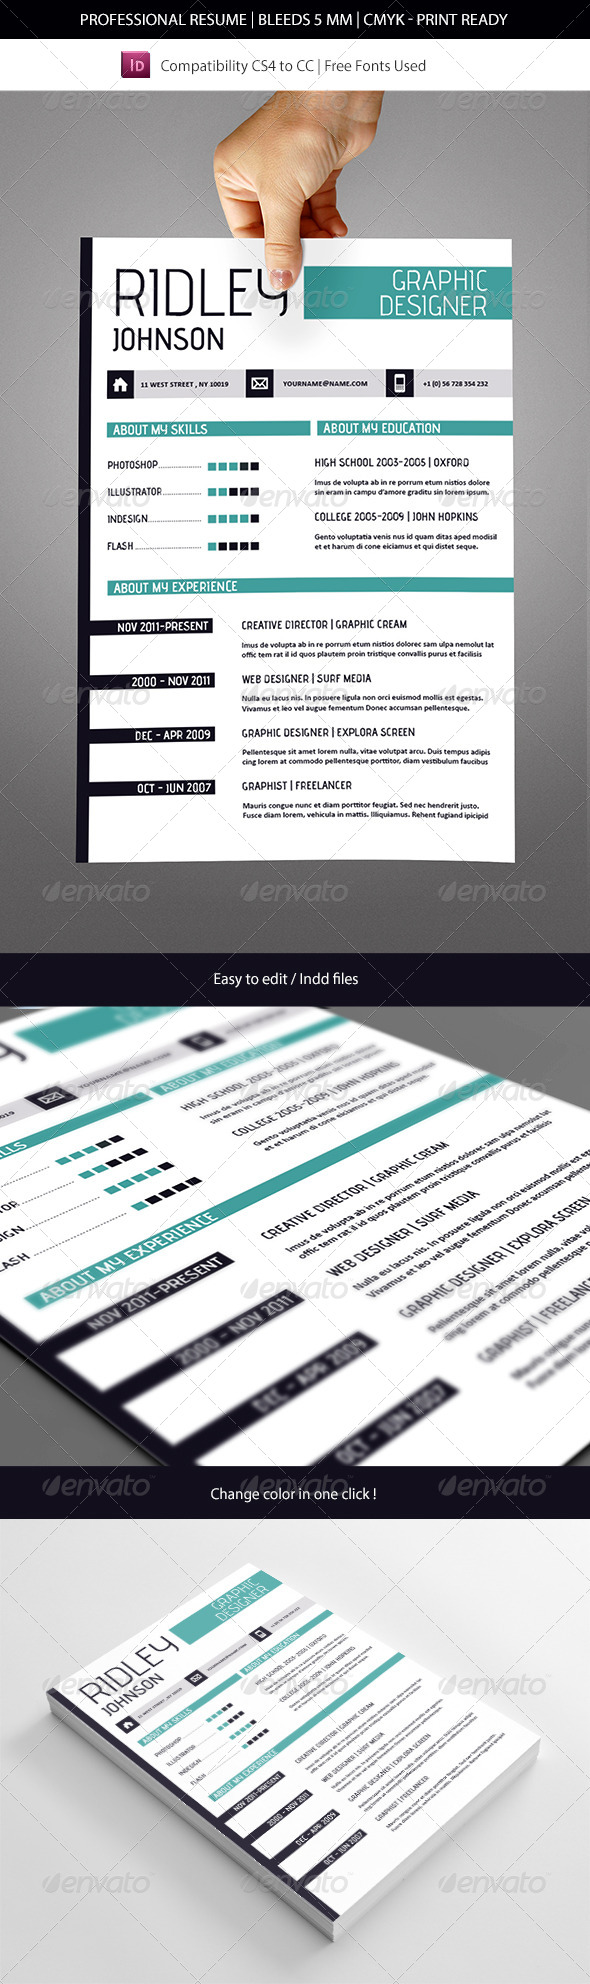 creative indesign resume template resumes download best gfx download. Black Bedroom Furniture Sets. Home Design Ideas